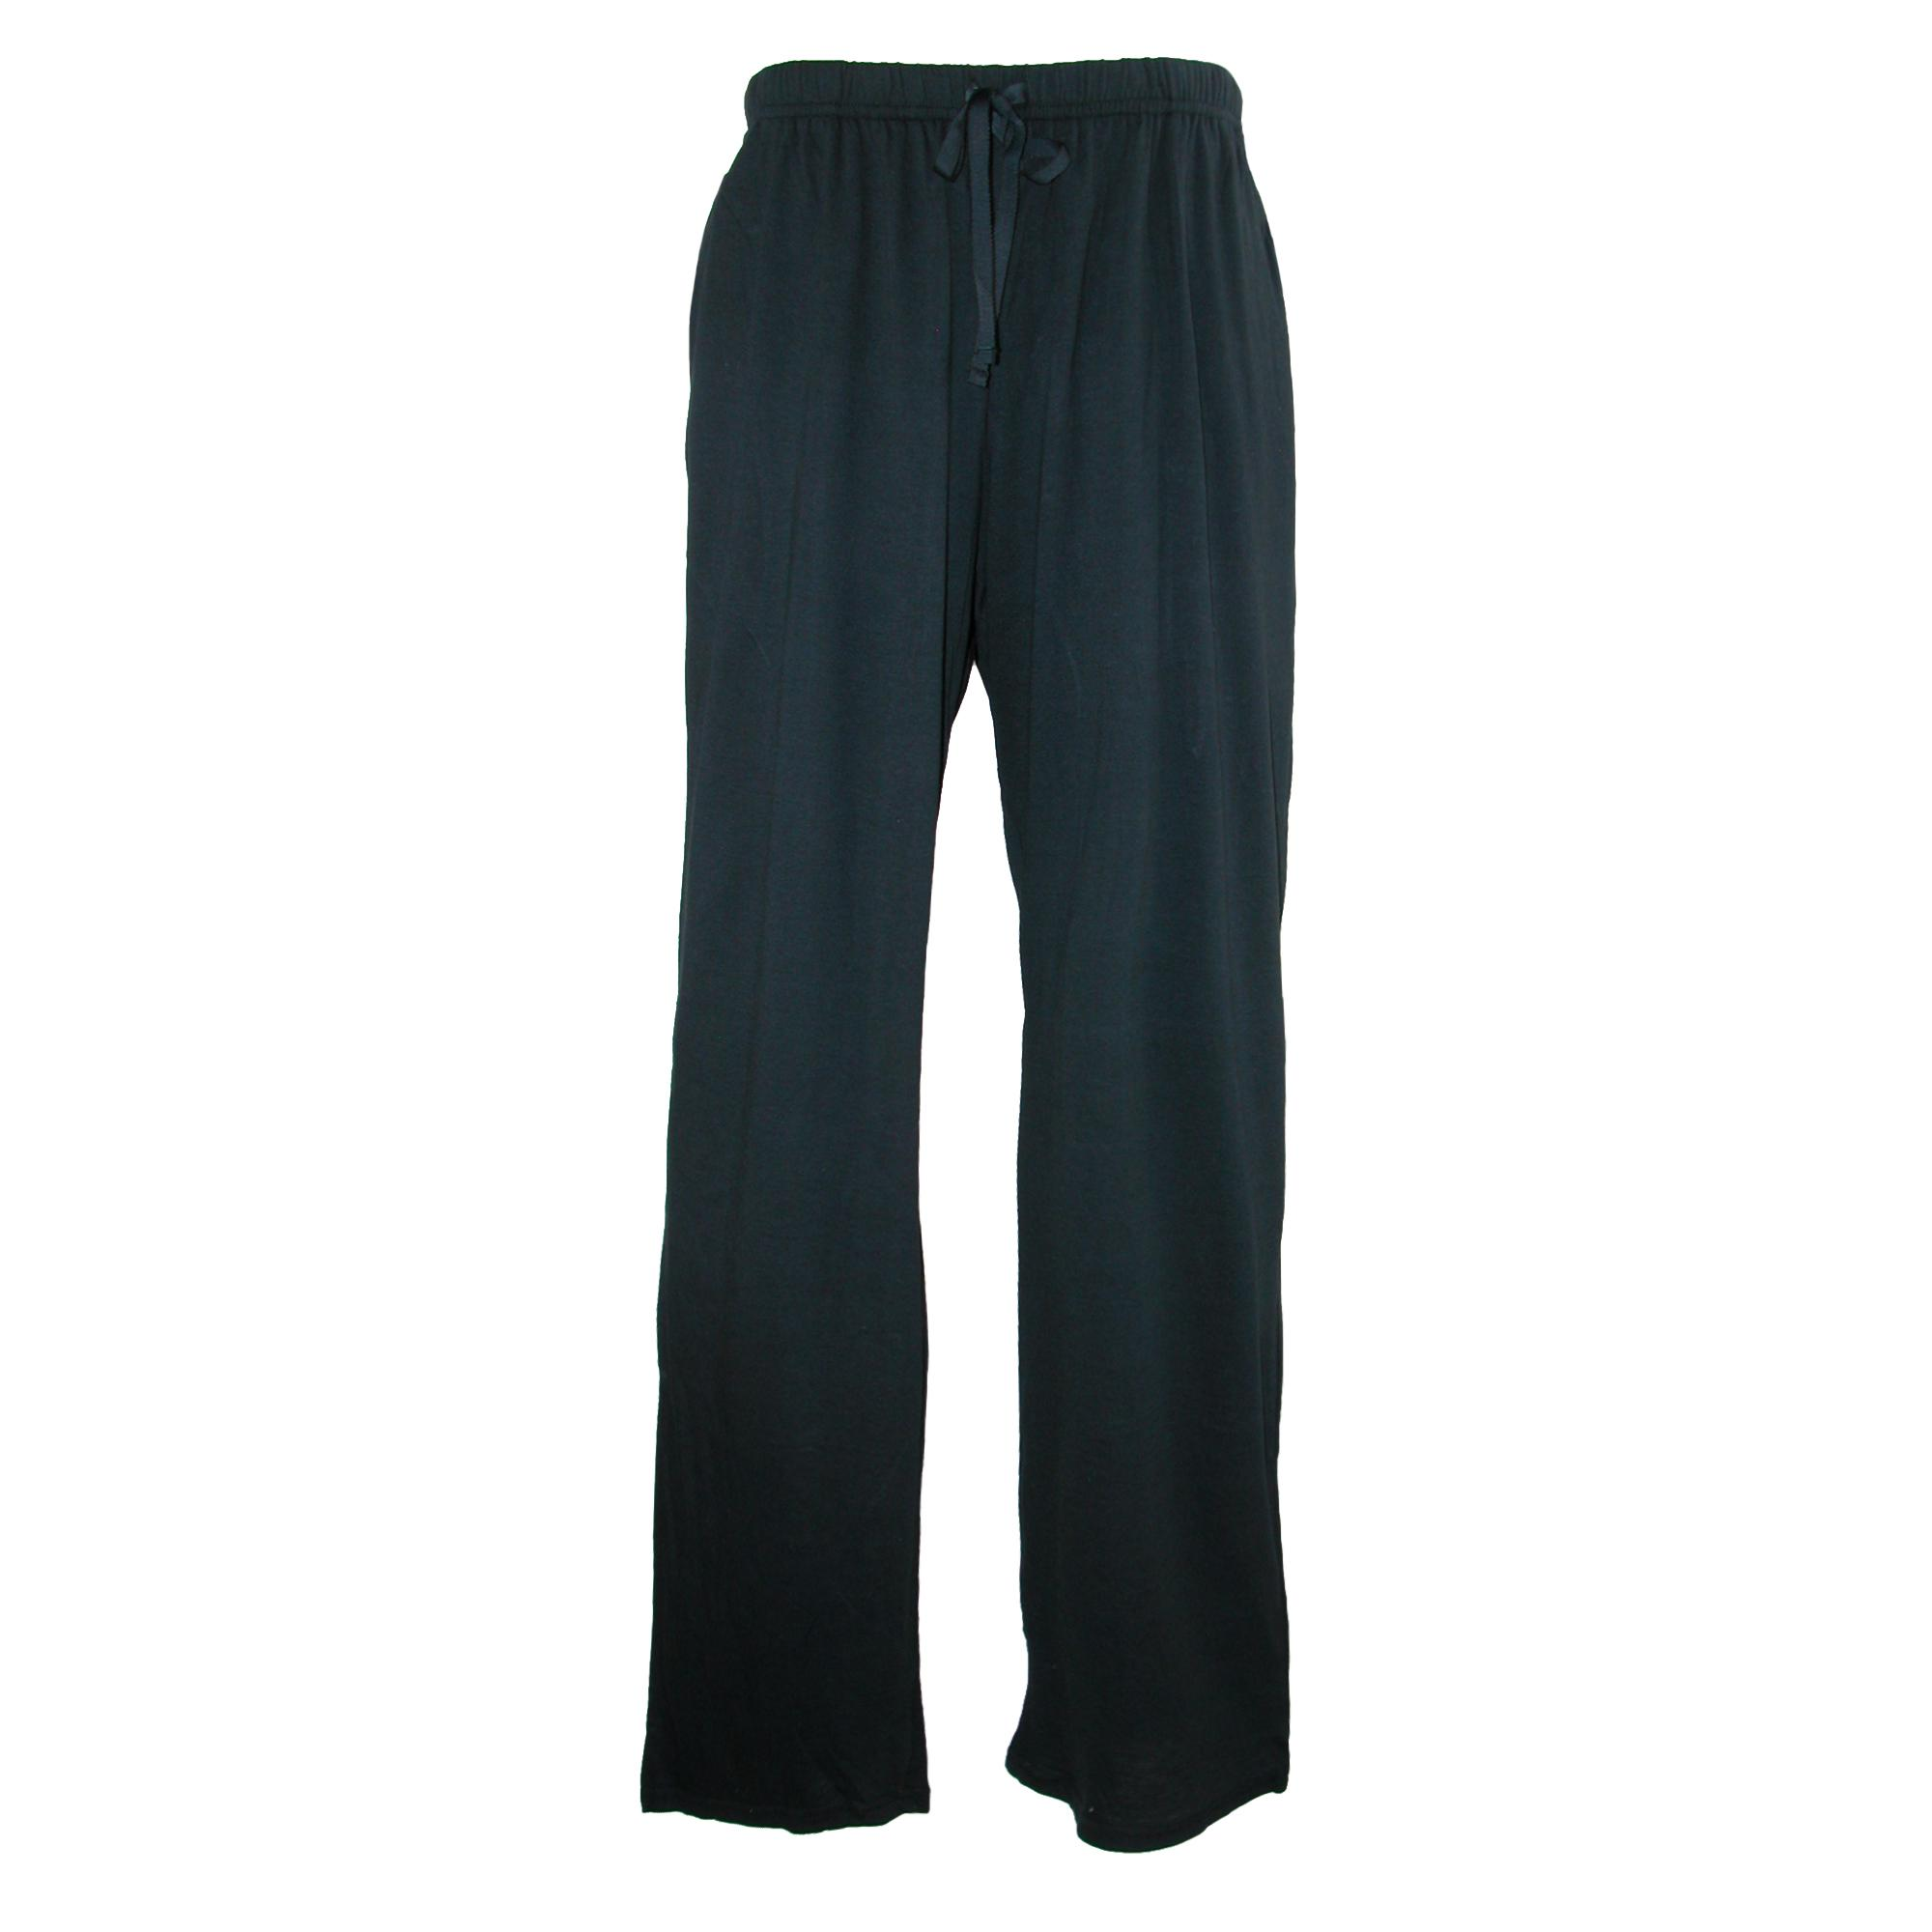 Hanes Womens X Temp Lounge Pant With Pockets